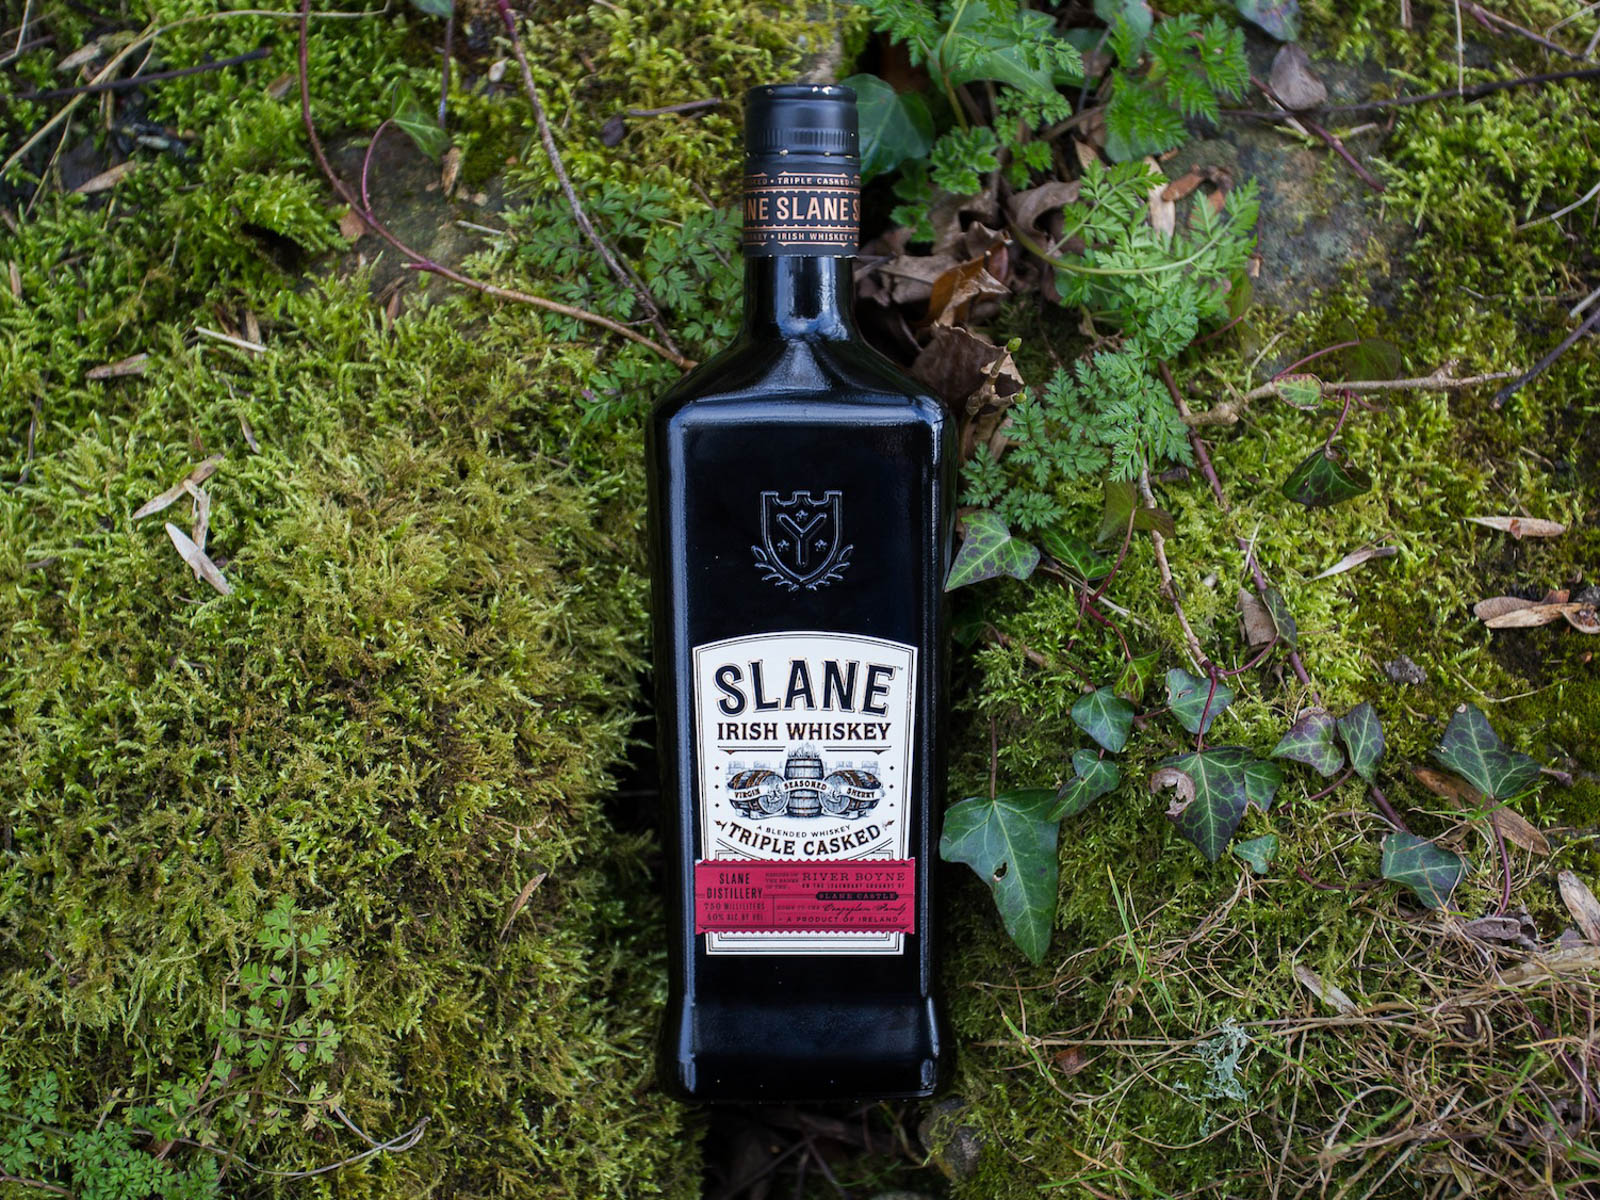 Sustainable Wines and Spirits Slane Irish Whiskey